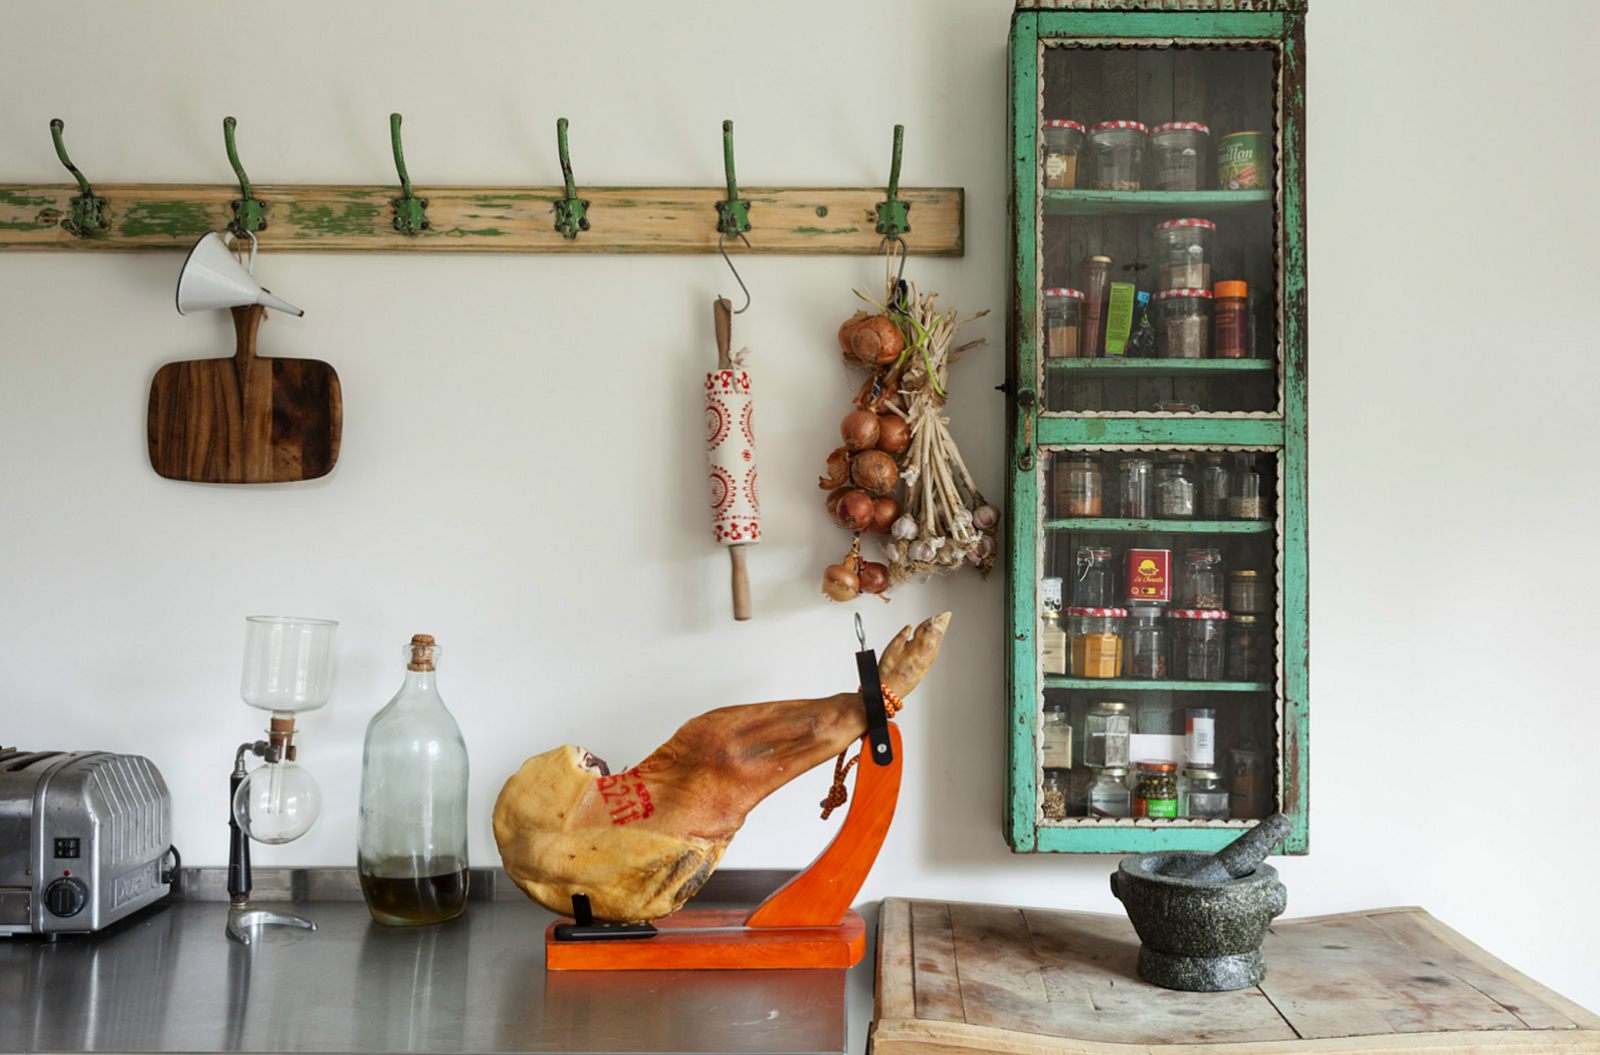 I love this spice cabinet!